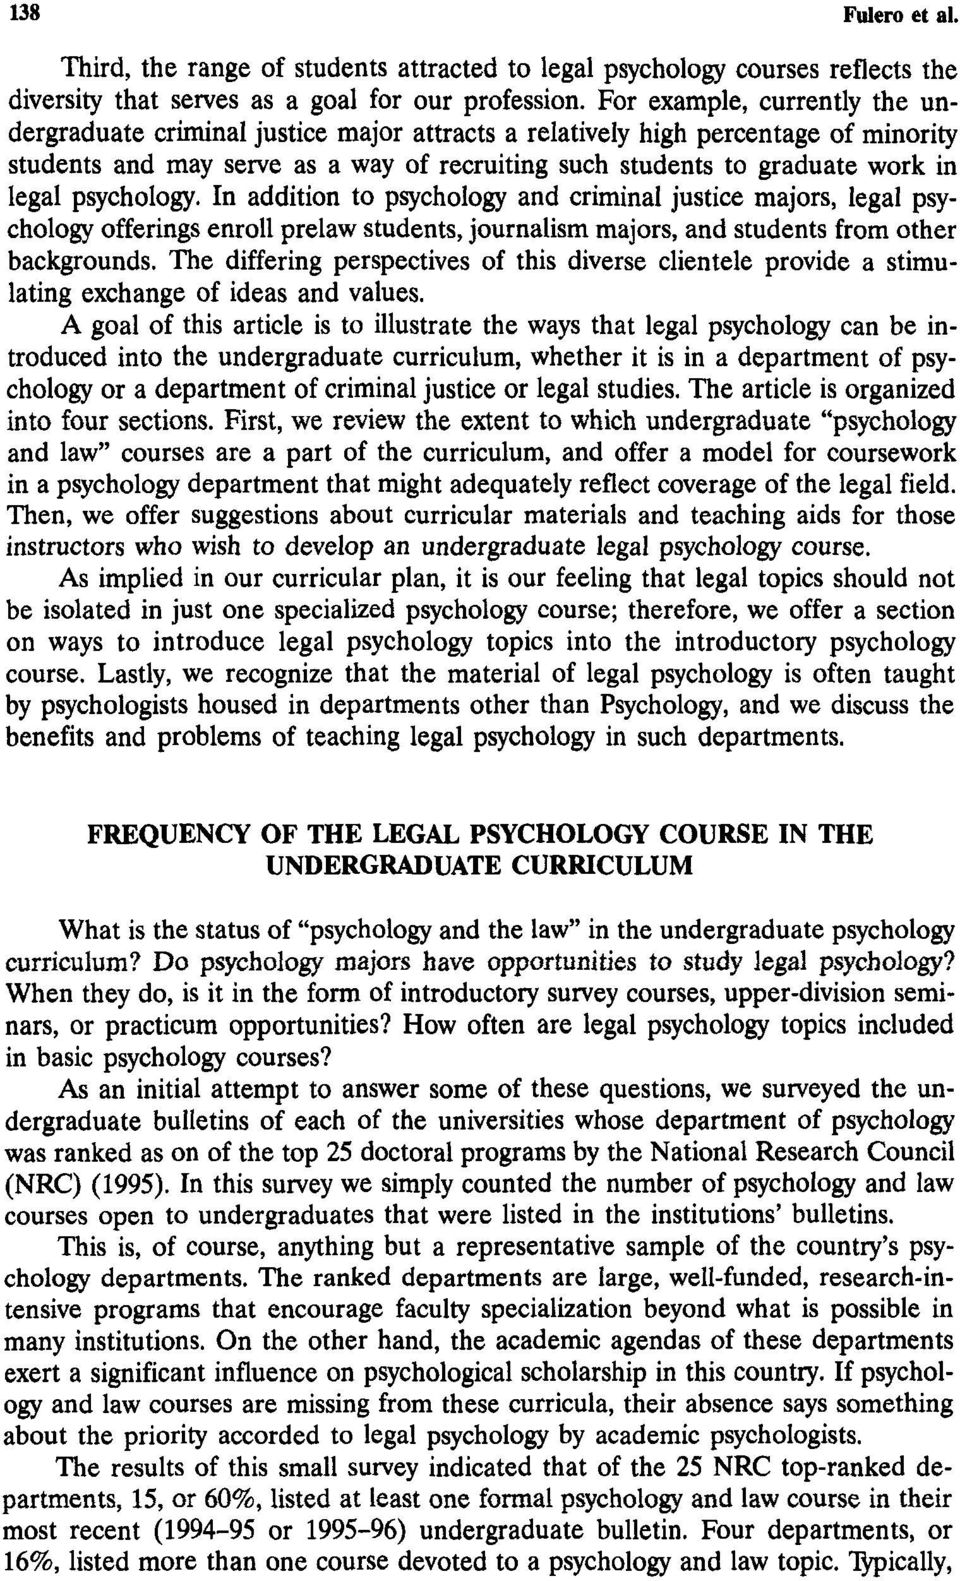 psychology. In addition to psychology and criminal justice majors, legal psychology offerings enroll prelaw students, journalism majors, and students from other backgrounds.